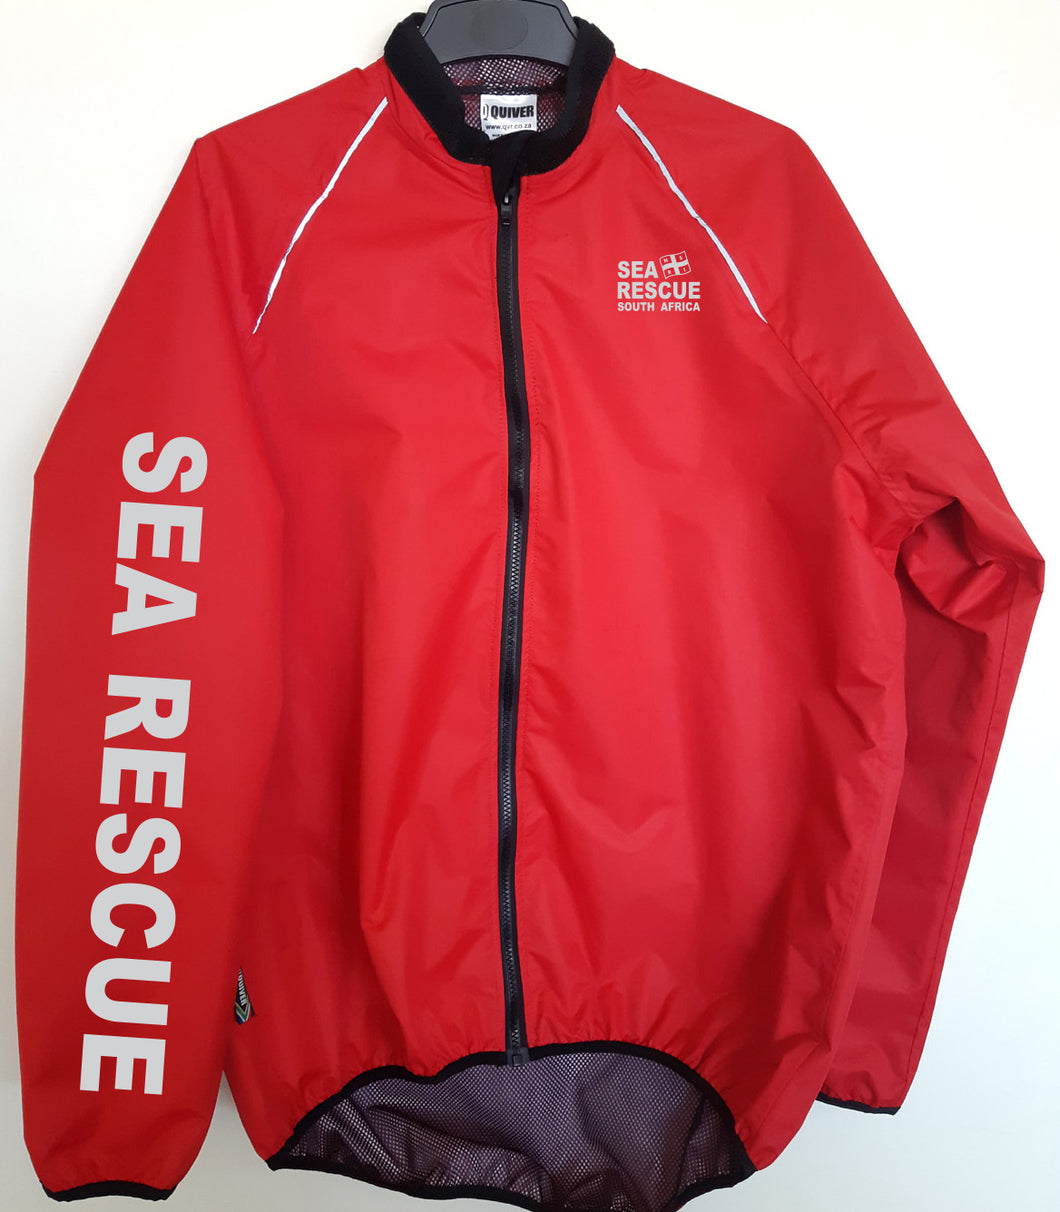 Crew Uniform Quiver Squall Jacket